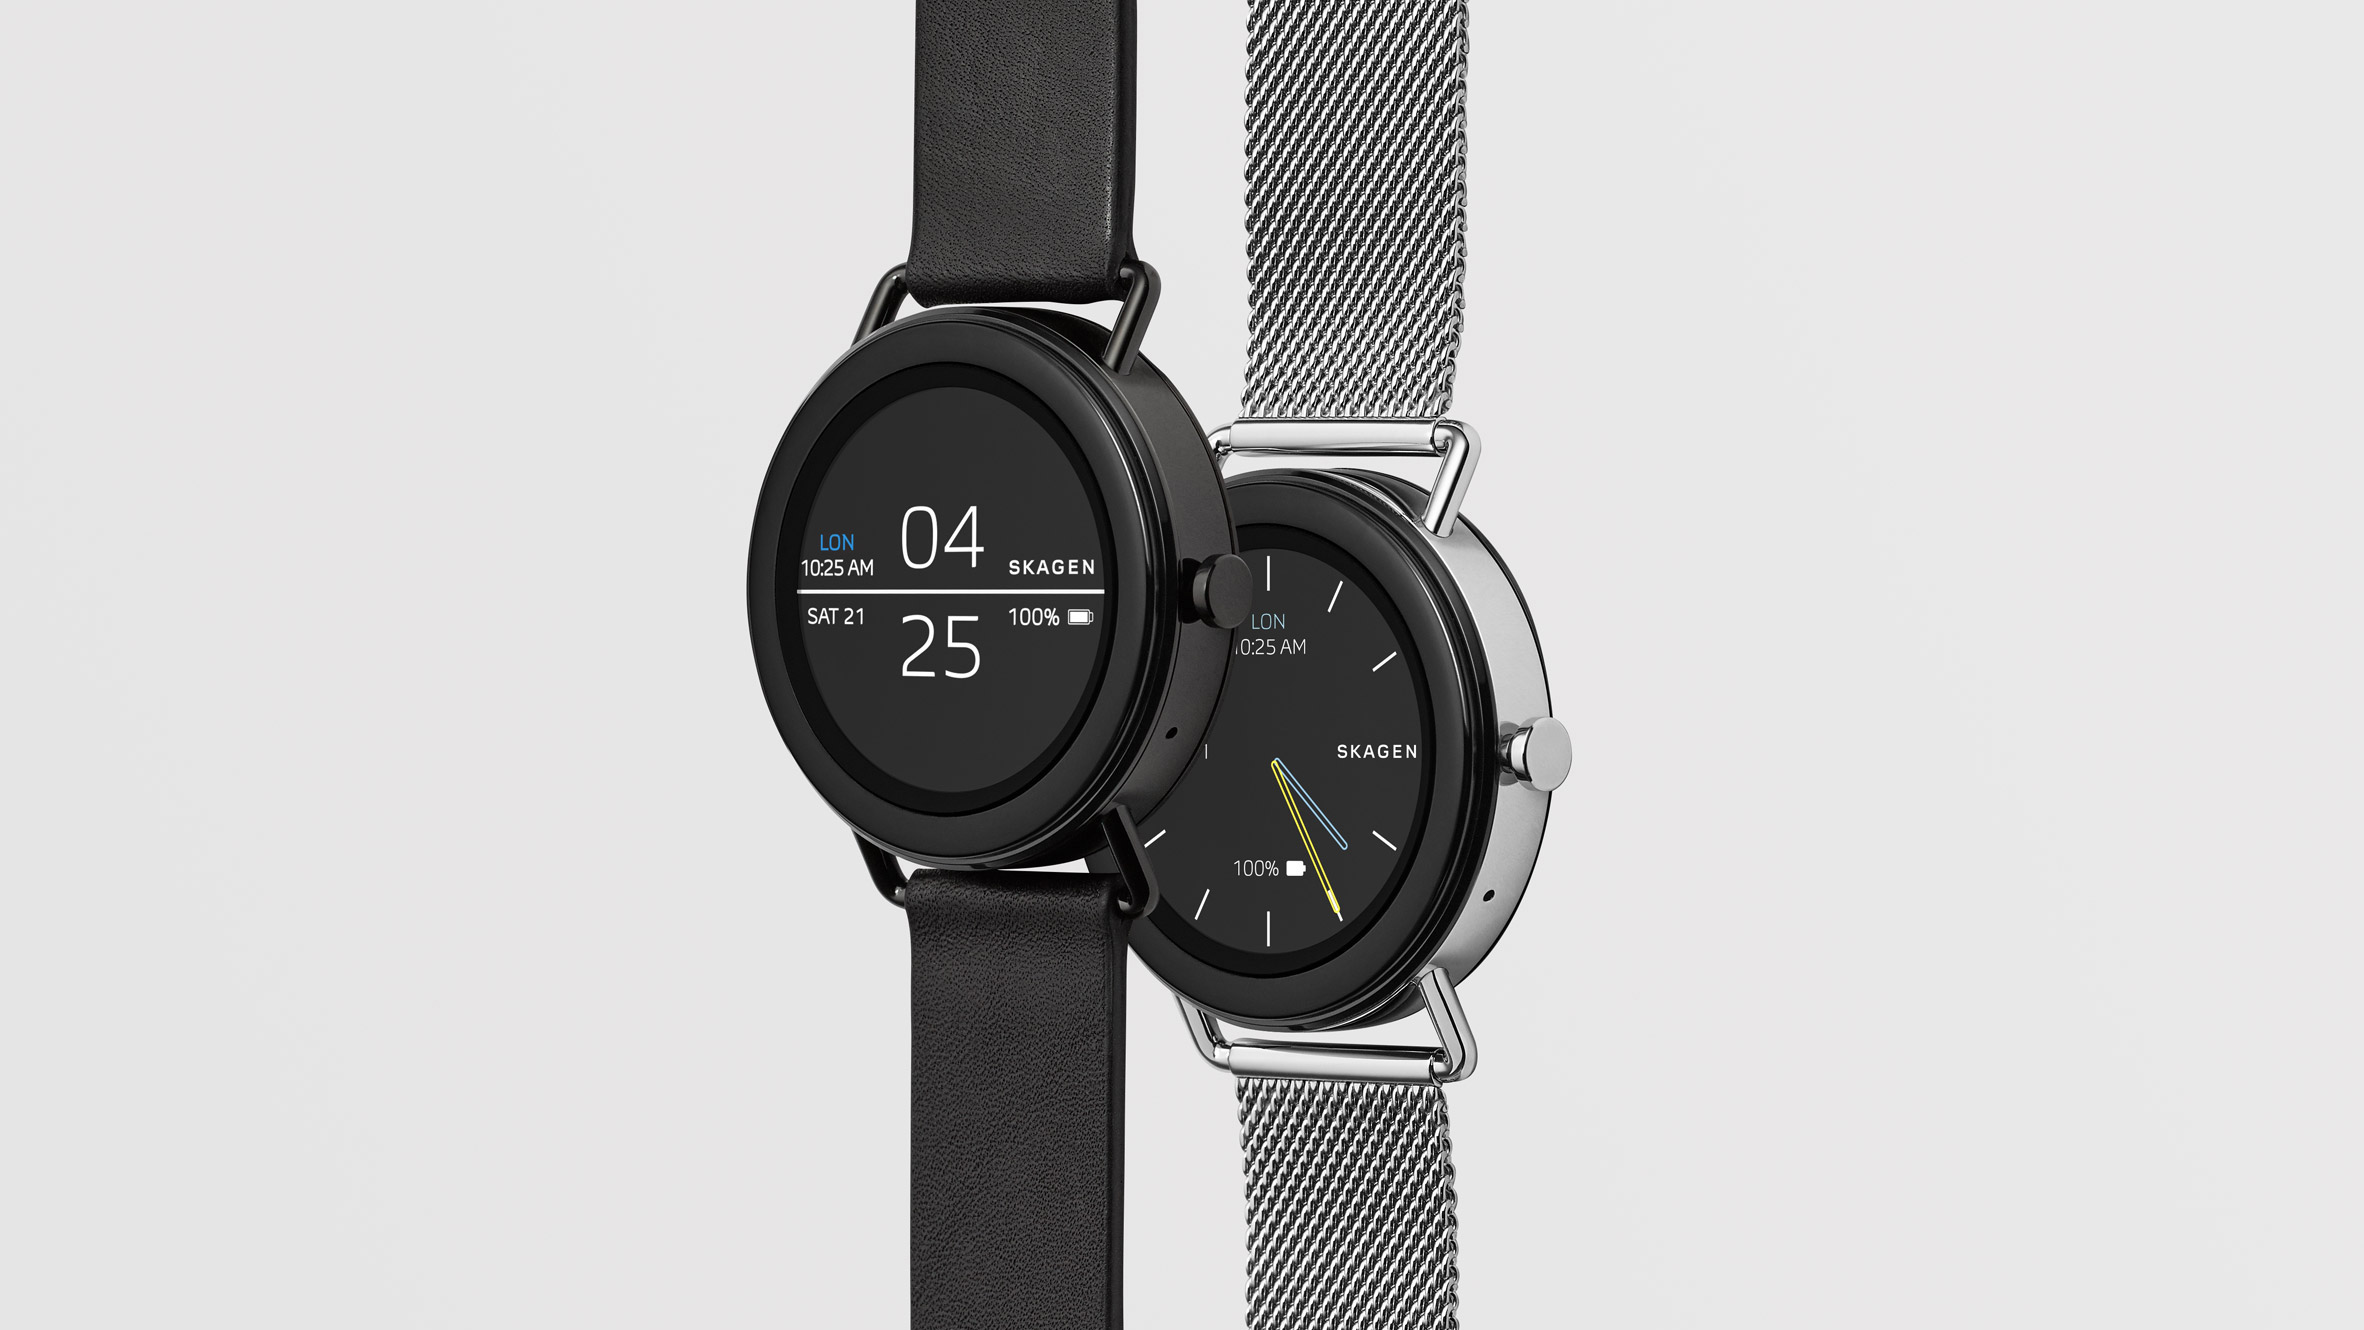 2fef8d877 Skagen's minimal smartwatch made without